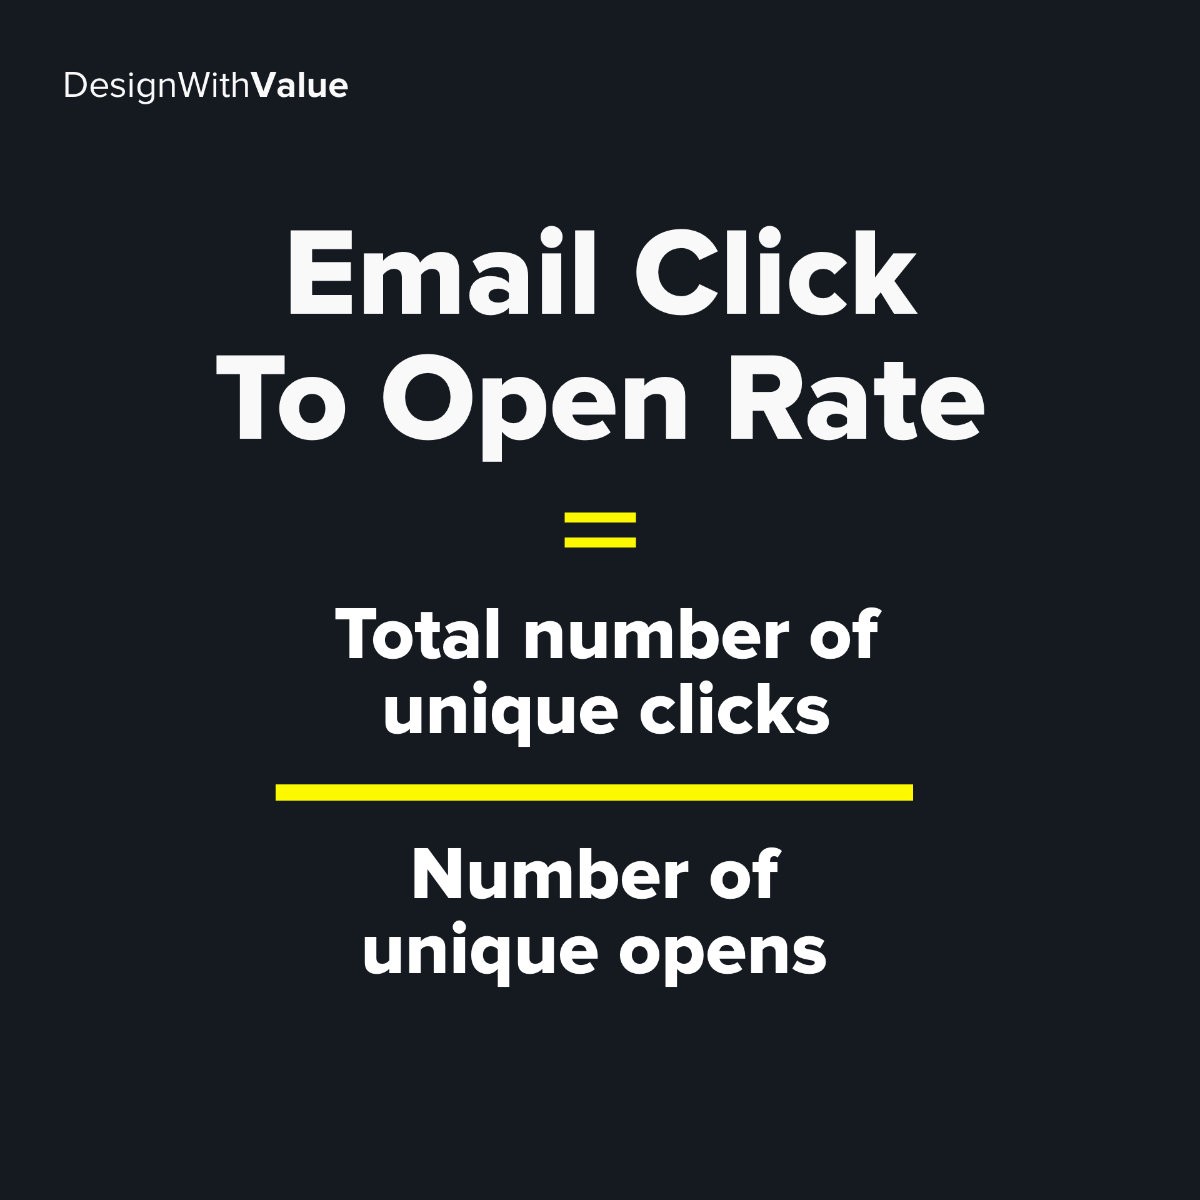 Email click to open rate calculation